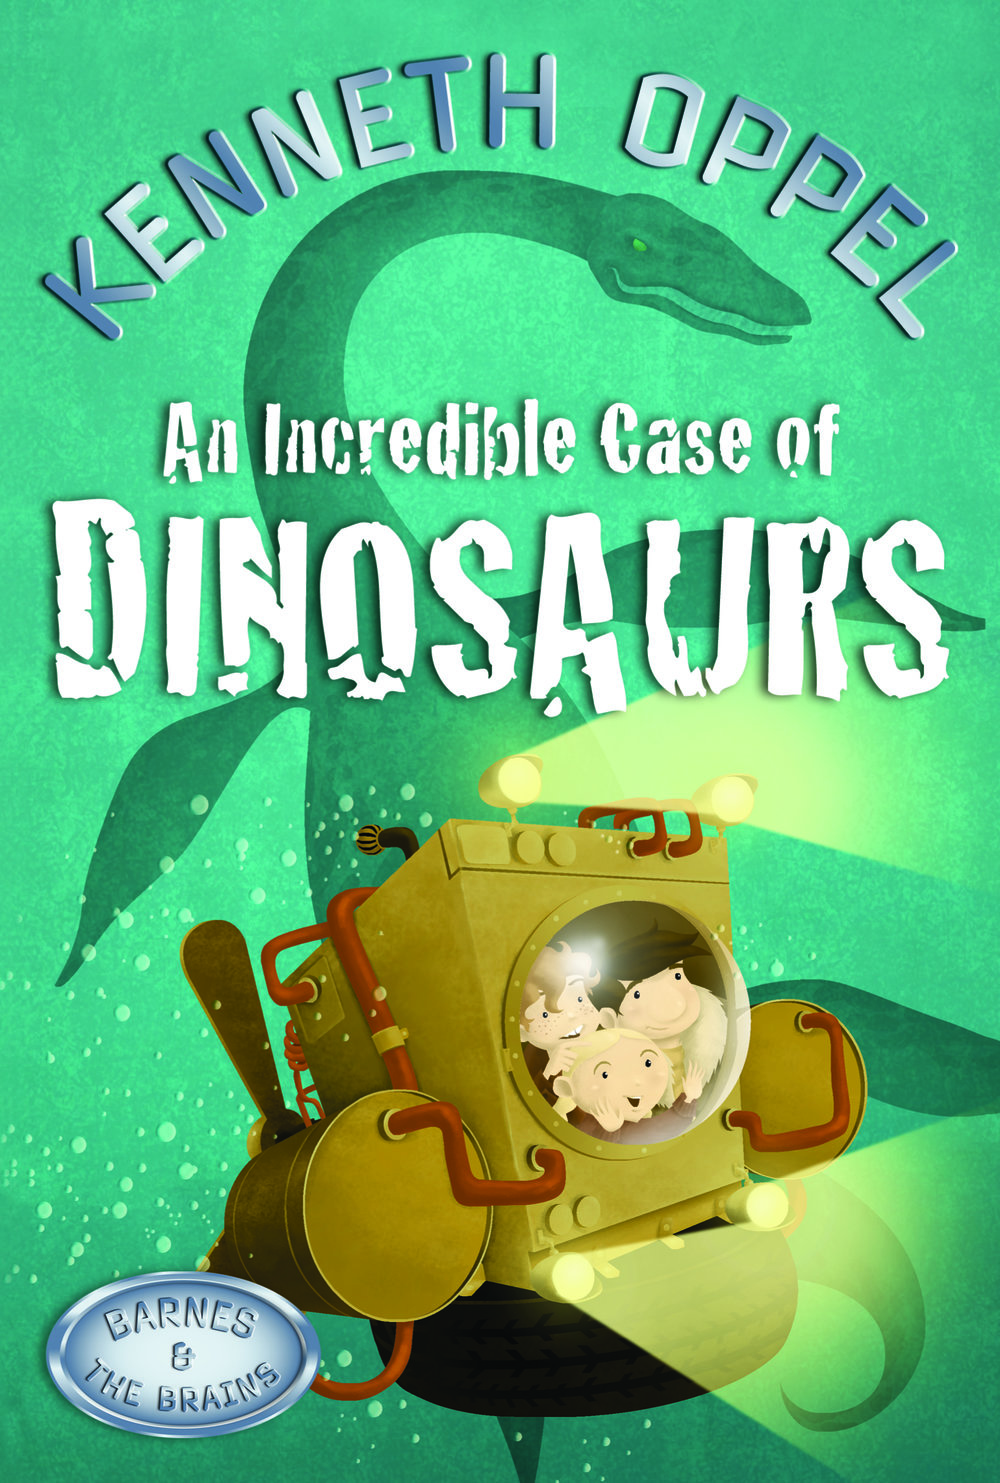 Incredible Case of Dinosaurs.jpg